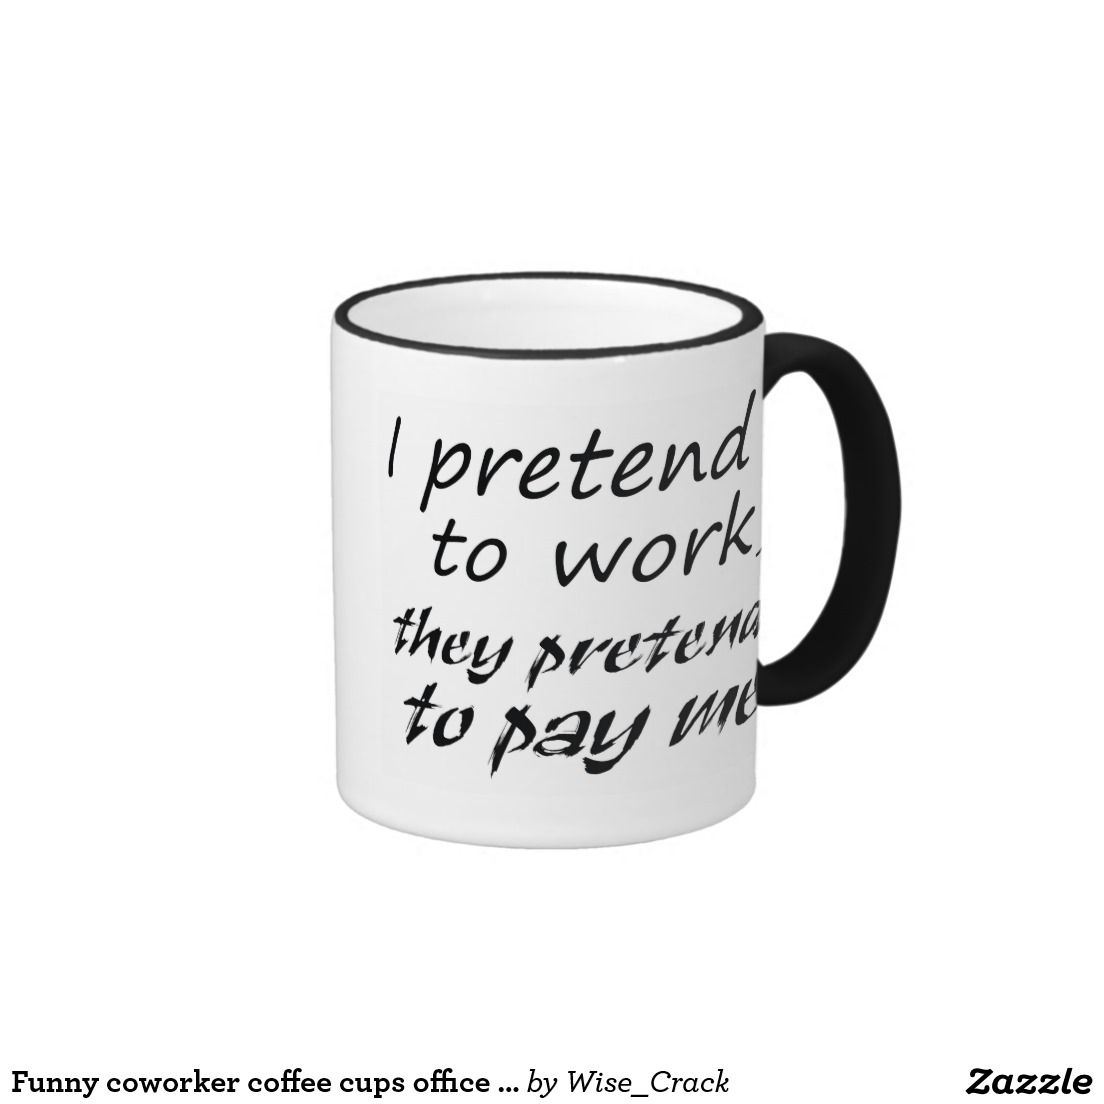 Funny coworker coffee cups office joke gift ideas ringer